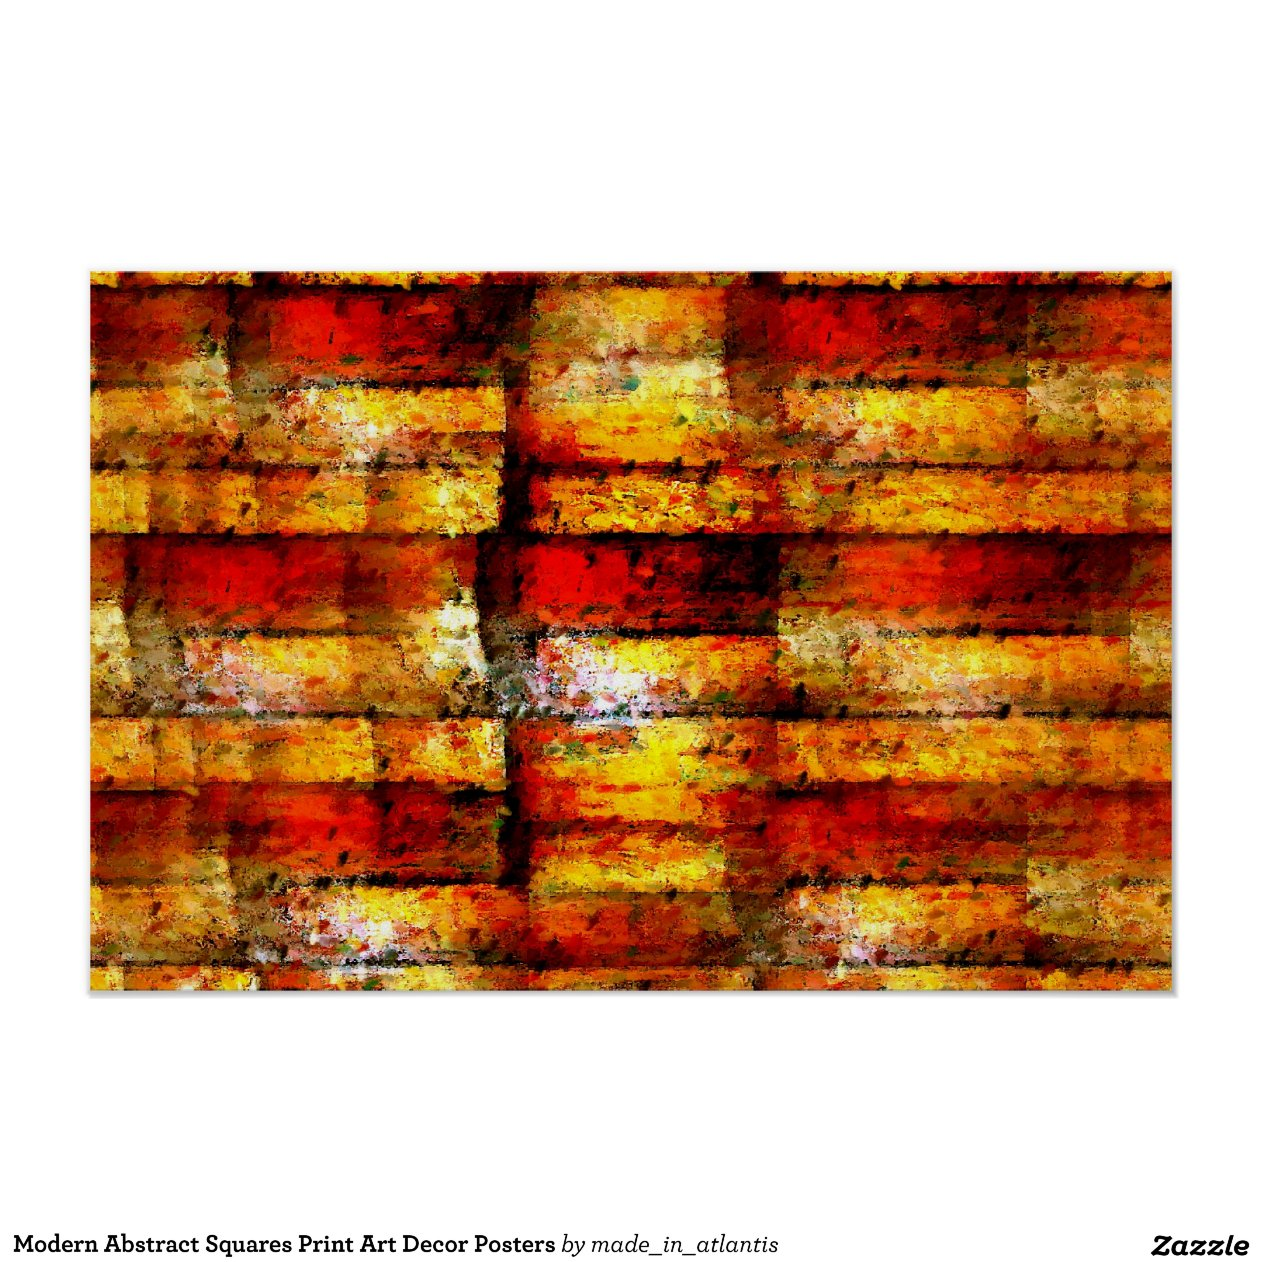 Modern Abstract Squares Print Art Decor Posters